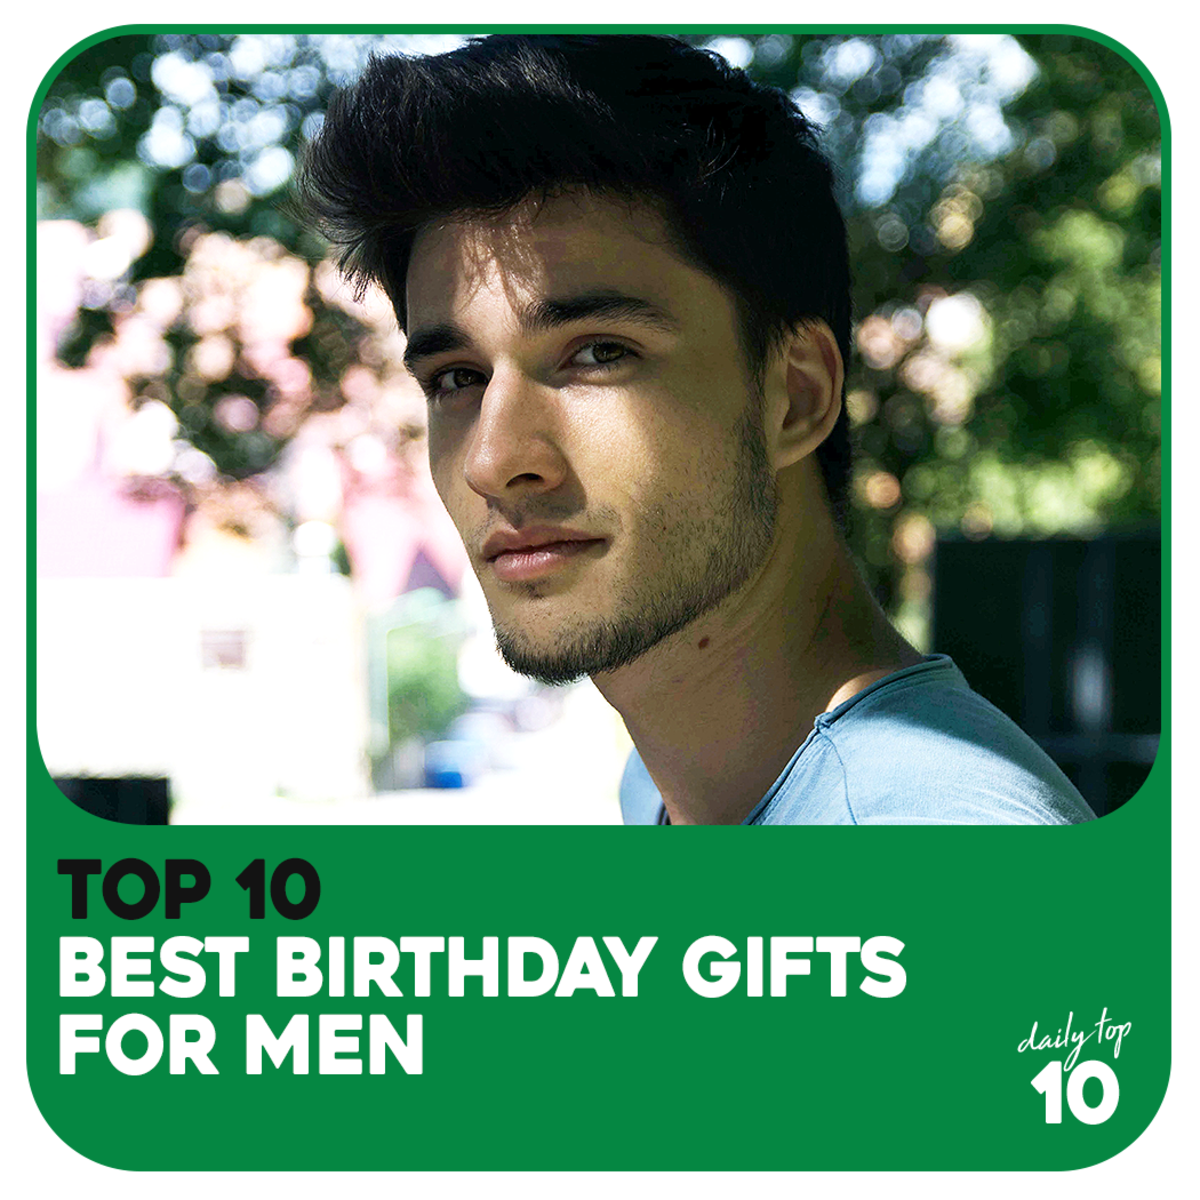 Top 10 Best Birthday Gifts for Men (Father, Husband, Brother, Friend)